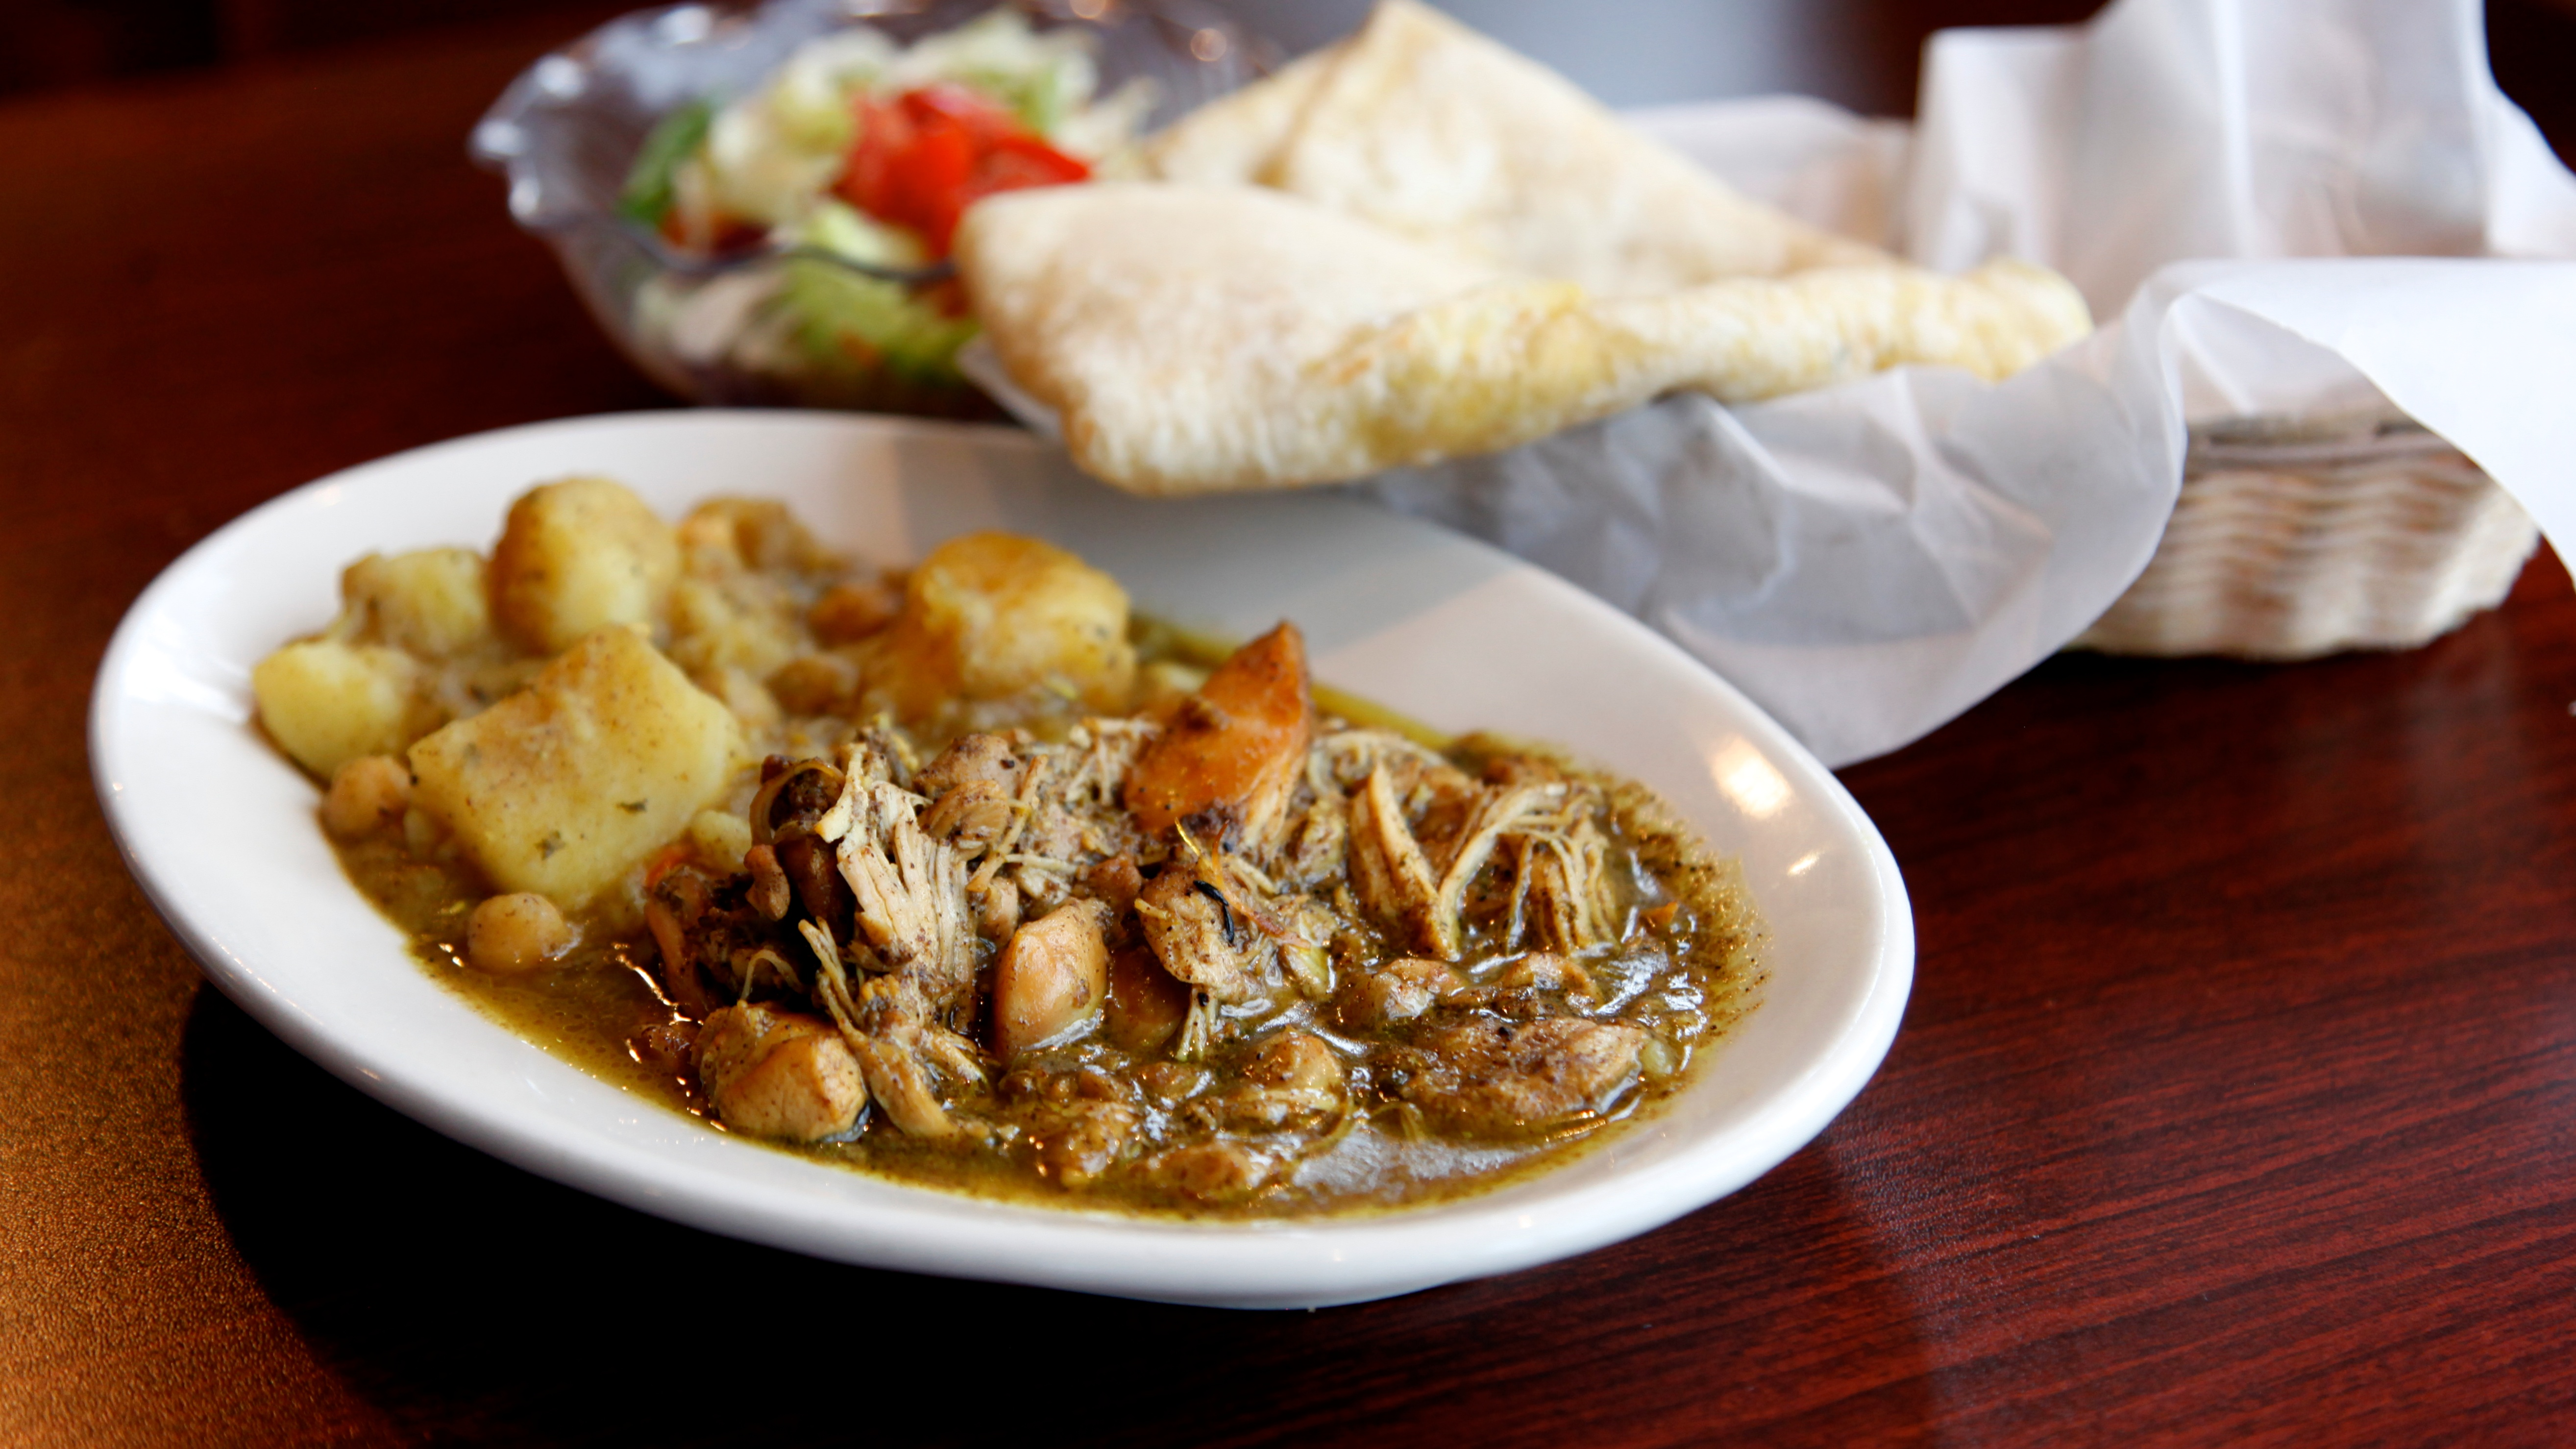 roti is the star at pams kitchen the cheerful caribbean cafe in the u district a soft seasoned flatbread thats a little like naan - Pams Kitchen